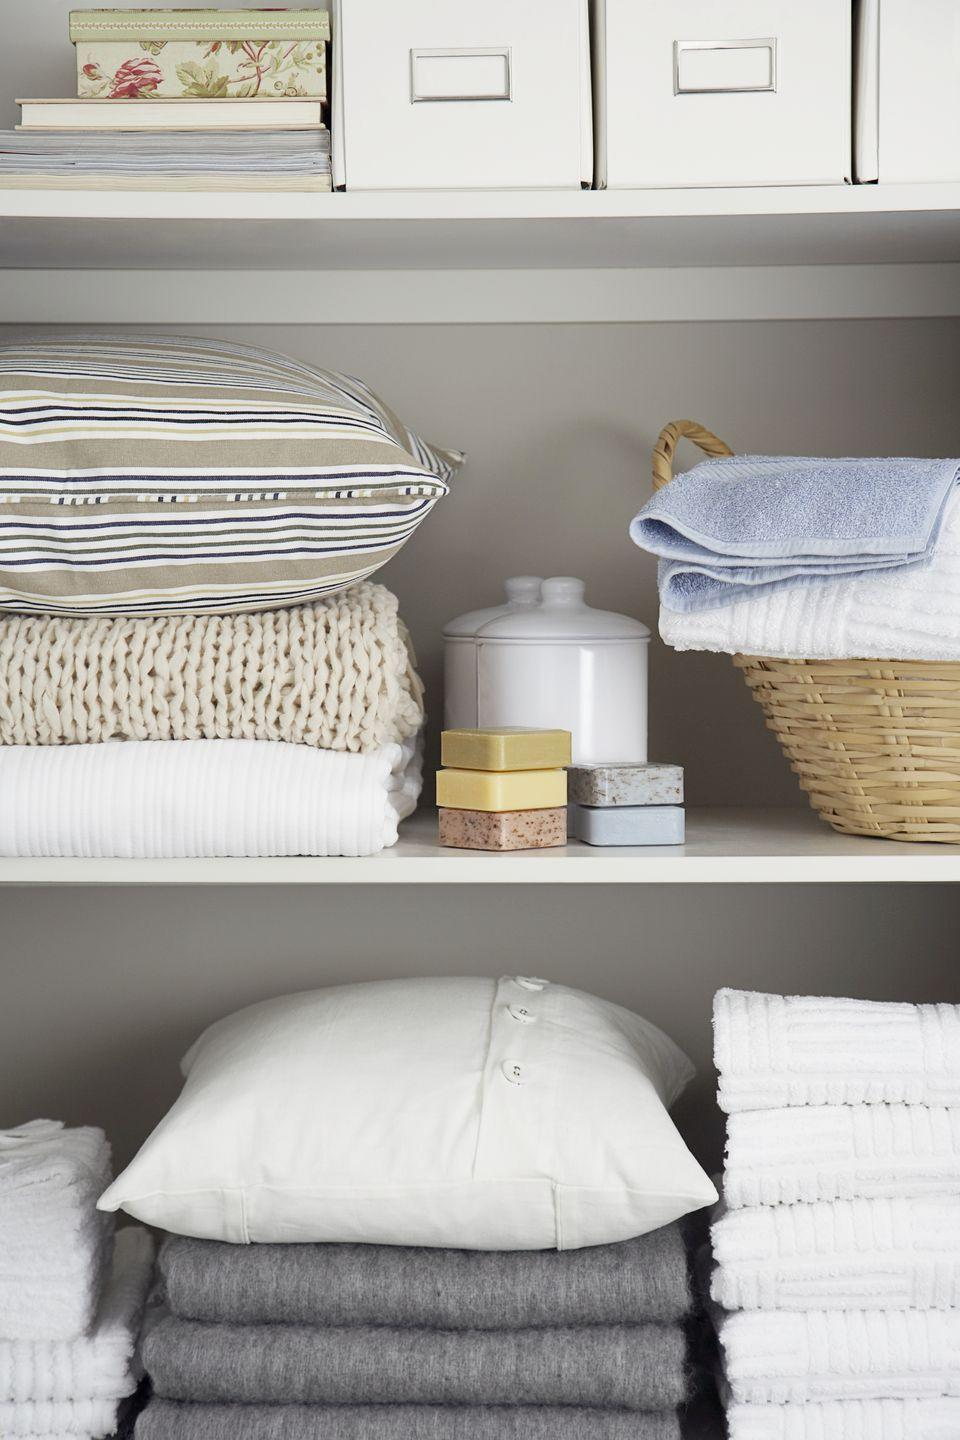 """<p>Put that box of old rags and T-shirts to good use and put them next to your <a href=""""https://www.womansday.com/home/organizing-cleaning/g23786765/cleaning-organizing-great-value-awards-2018/"""" rel=""""nofollow noopener"""" target=""""_blank"""" data-ylk=""""slk:cleaning products"""" class=""""link rapid-noclick-resp"""">cleaning products</a> for easy access. </p>"""